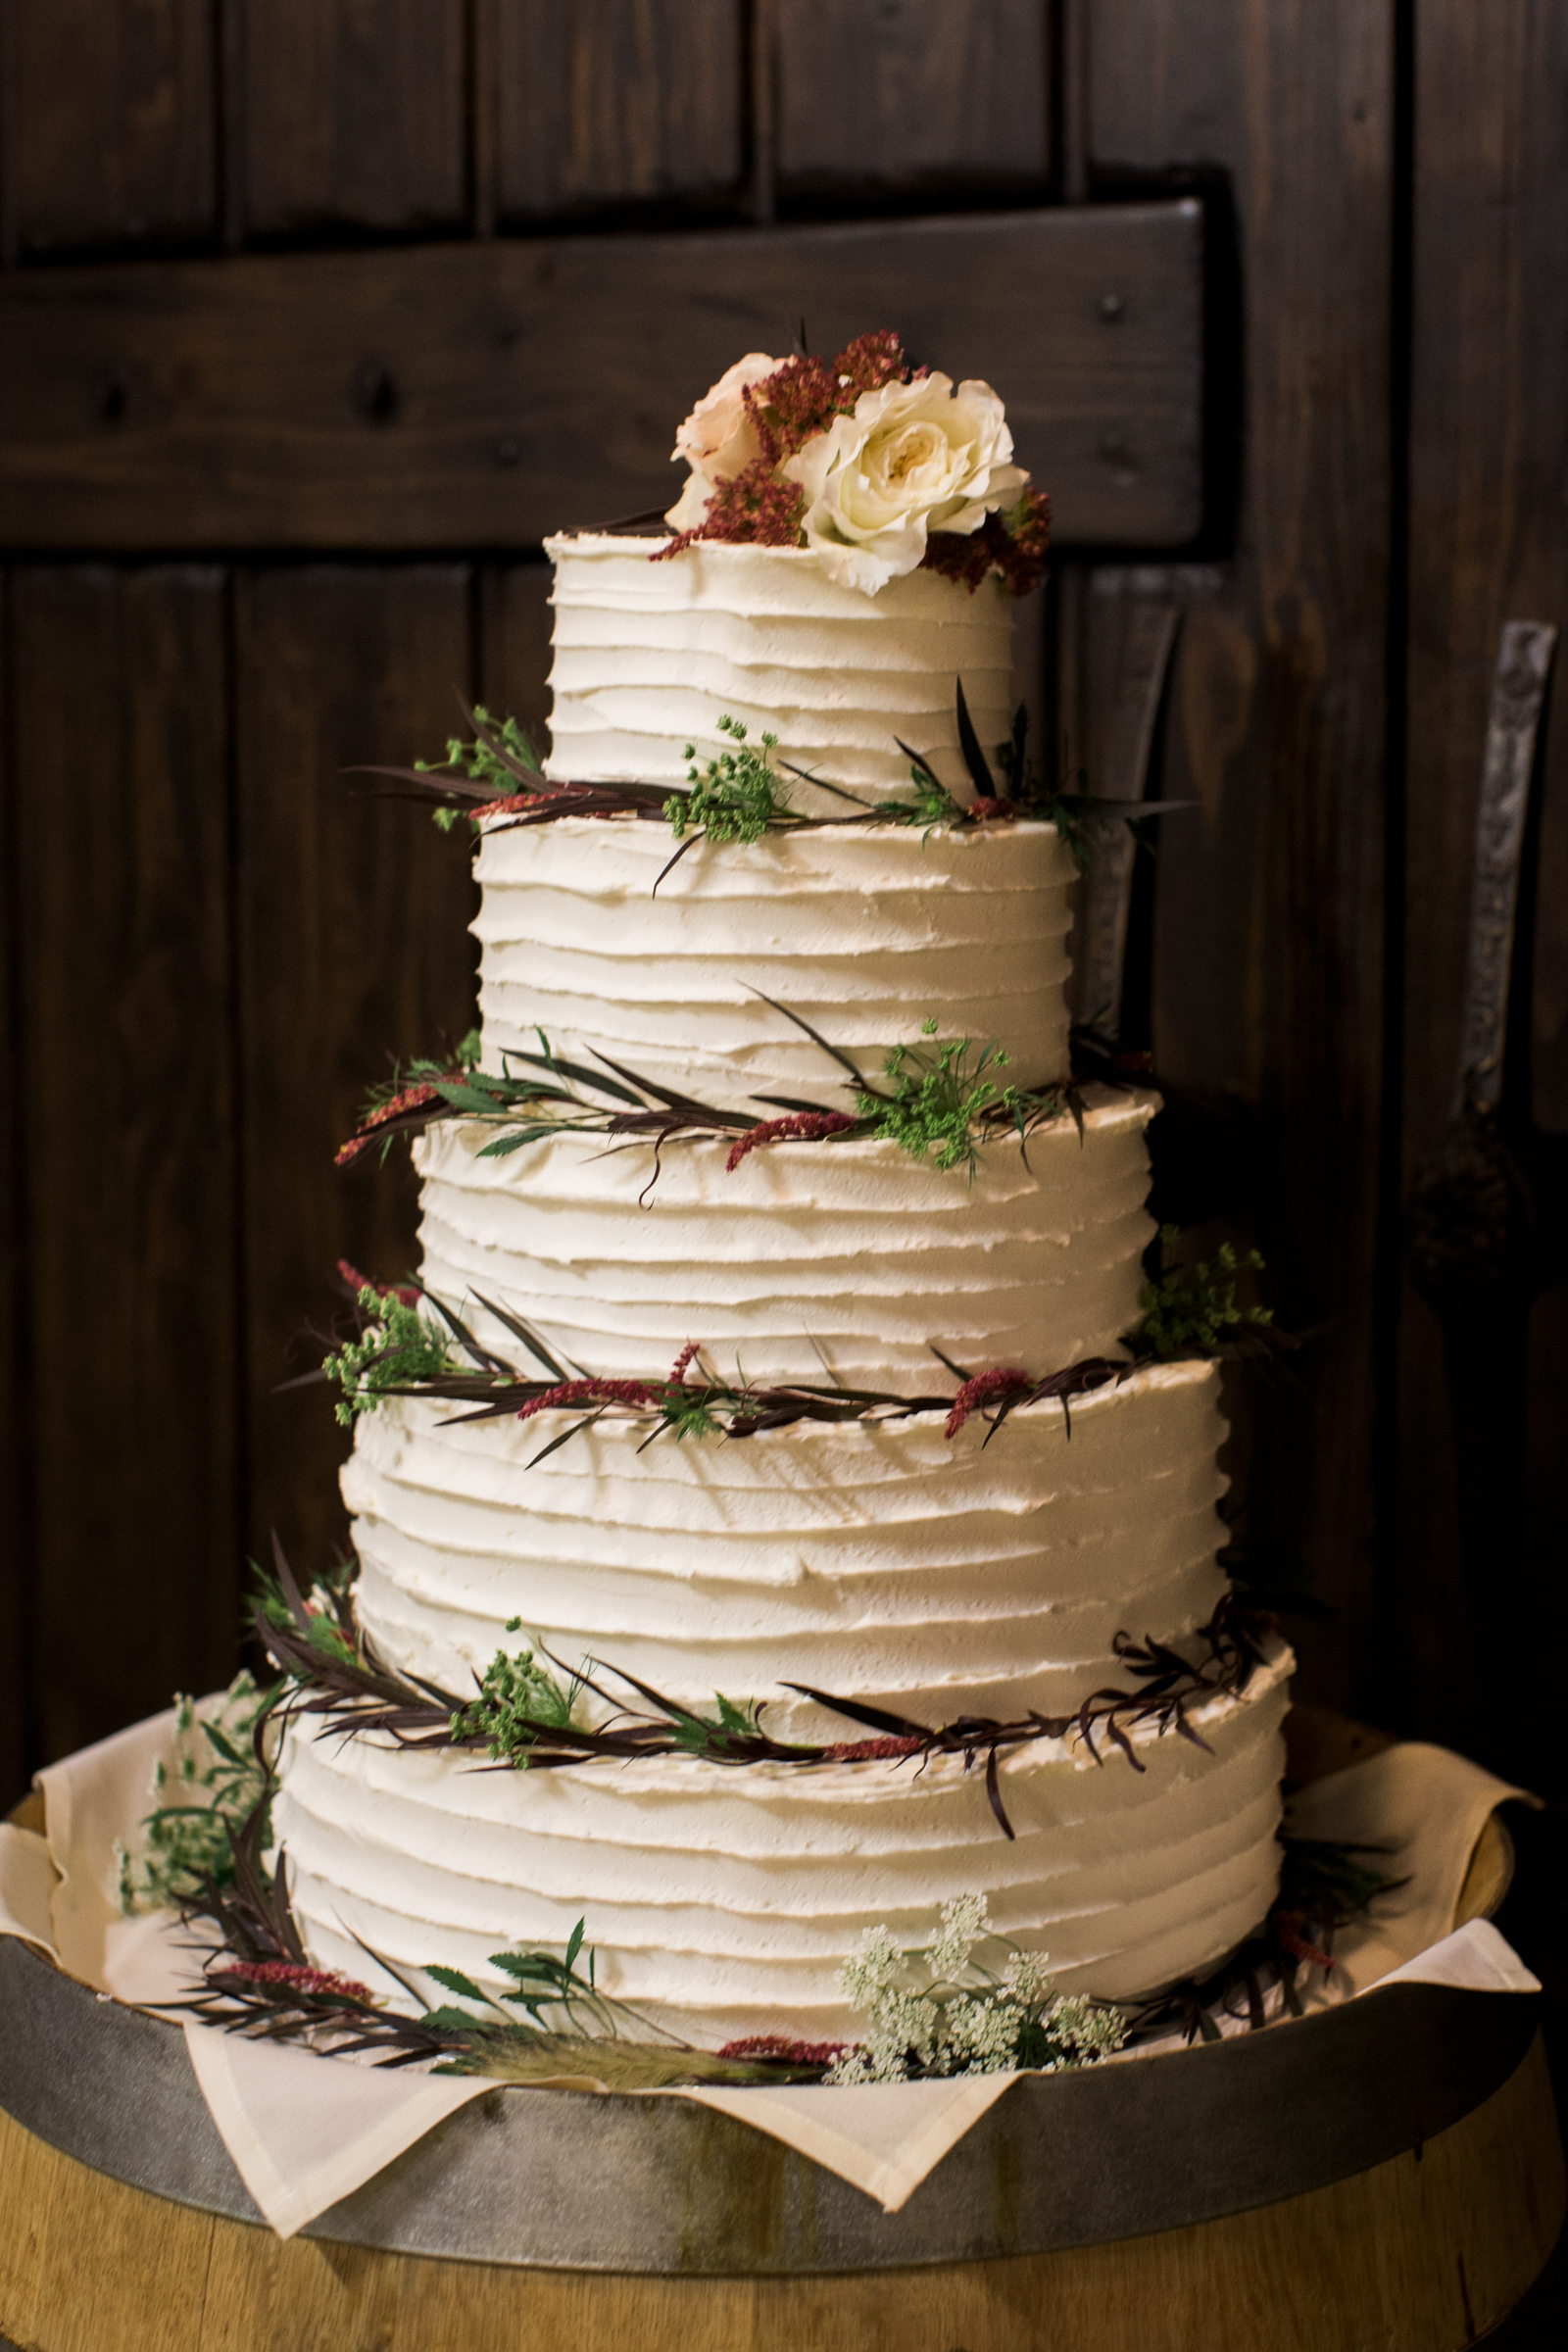 tier-buttercream-cake-with-greenery-and-roses-stephanie-cristalli-photography